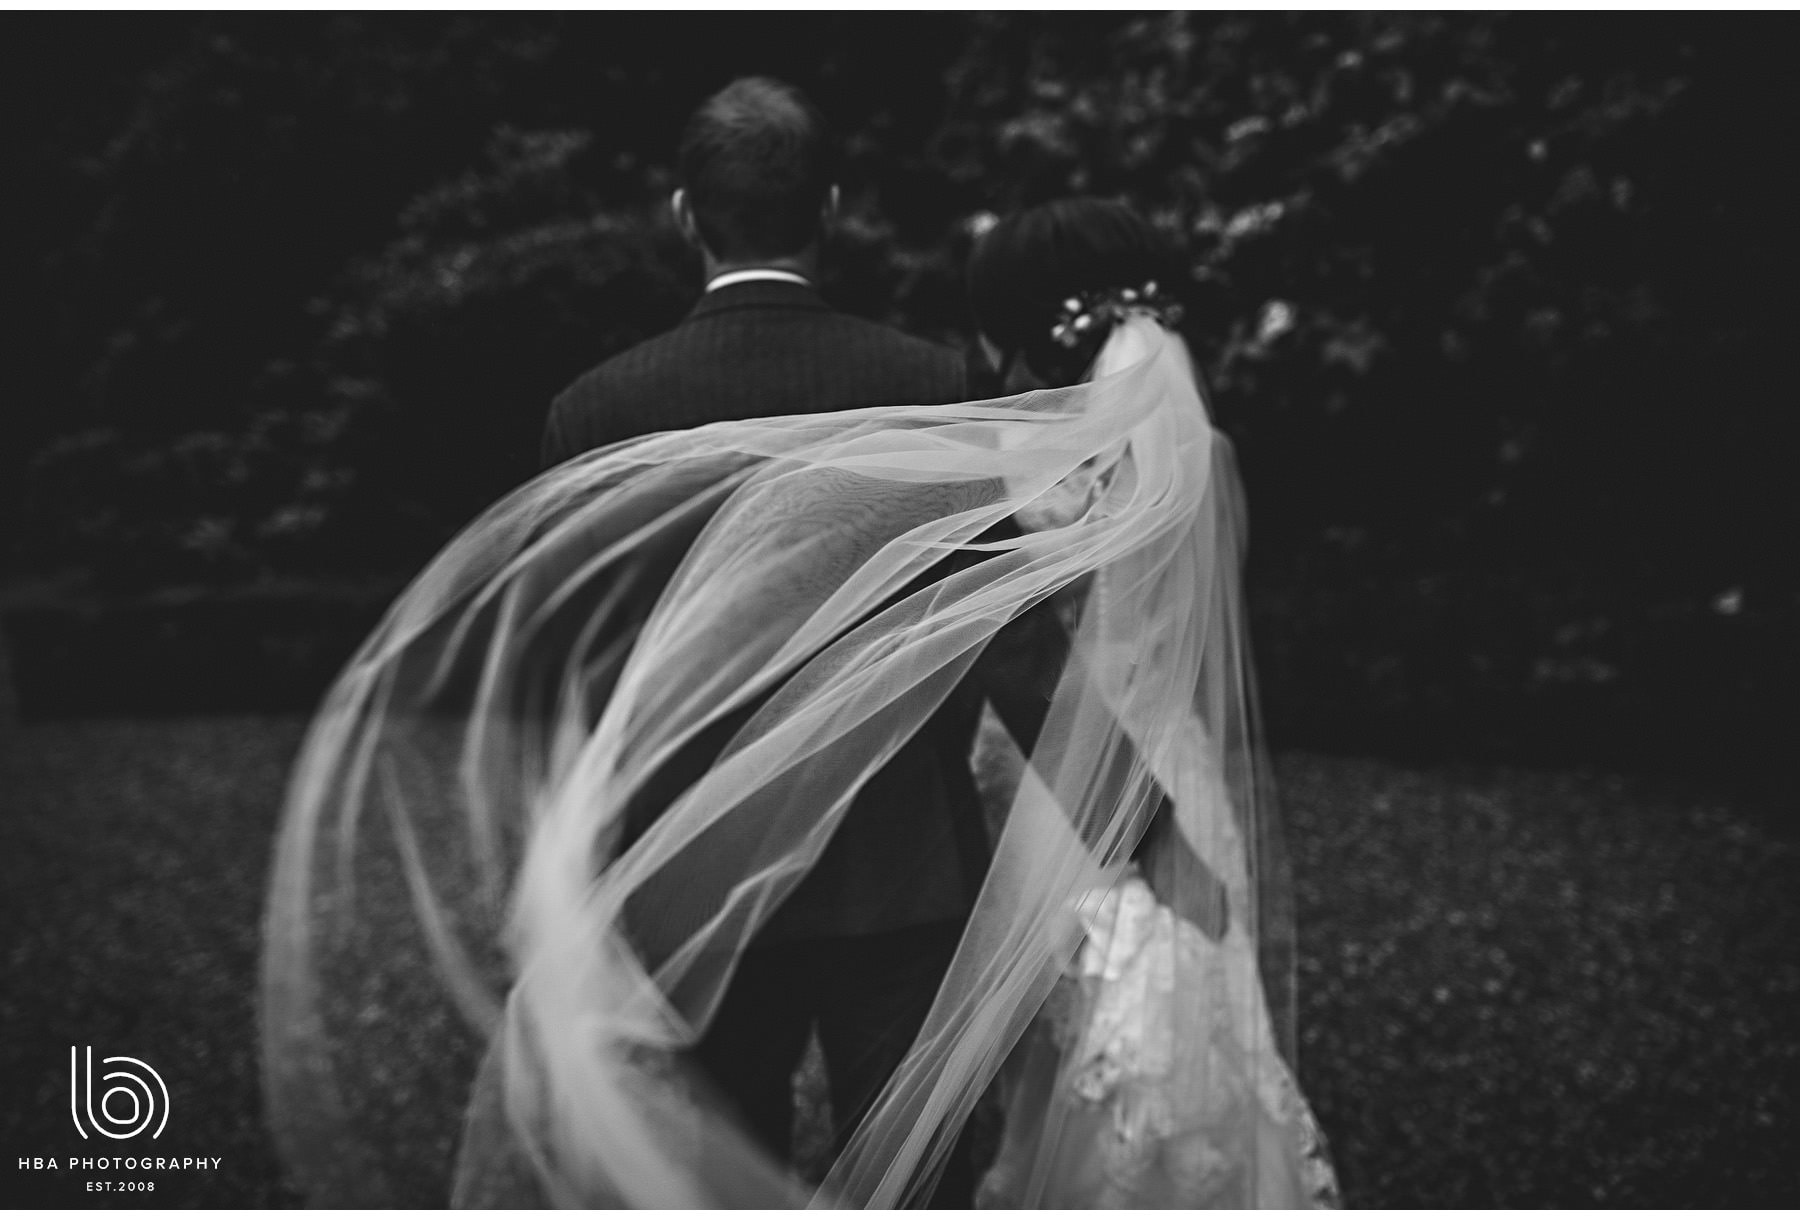 the bride's veil blowing in the wind